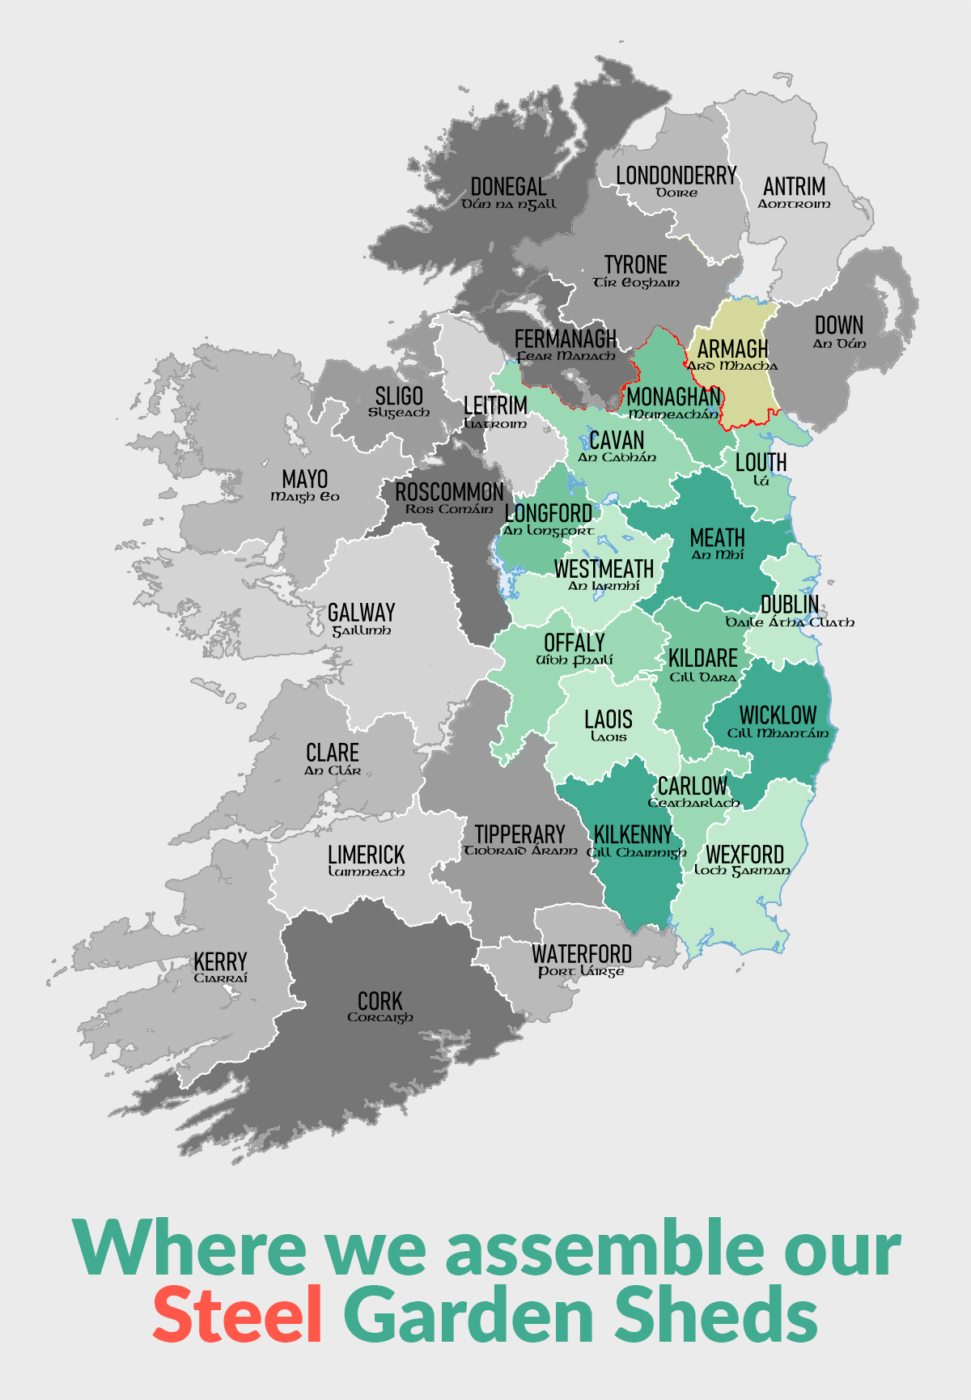 A map of Ireland that reads 'where we assemble our Steel Garden Sheds', with the counties Dublin, meath, kildare, wicklow, louth, armagh, monaghan, cavan, longford, westmeath, offaly, laois, carlow, kilkenny and wexford highlighted